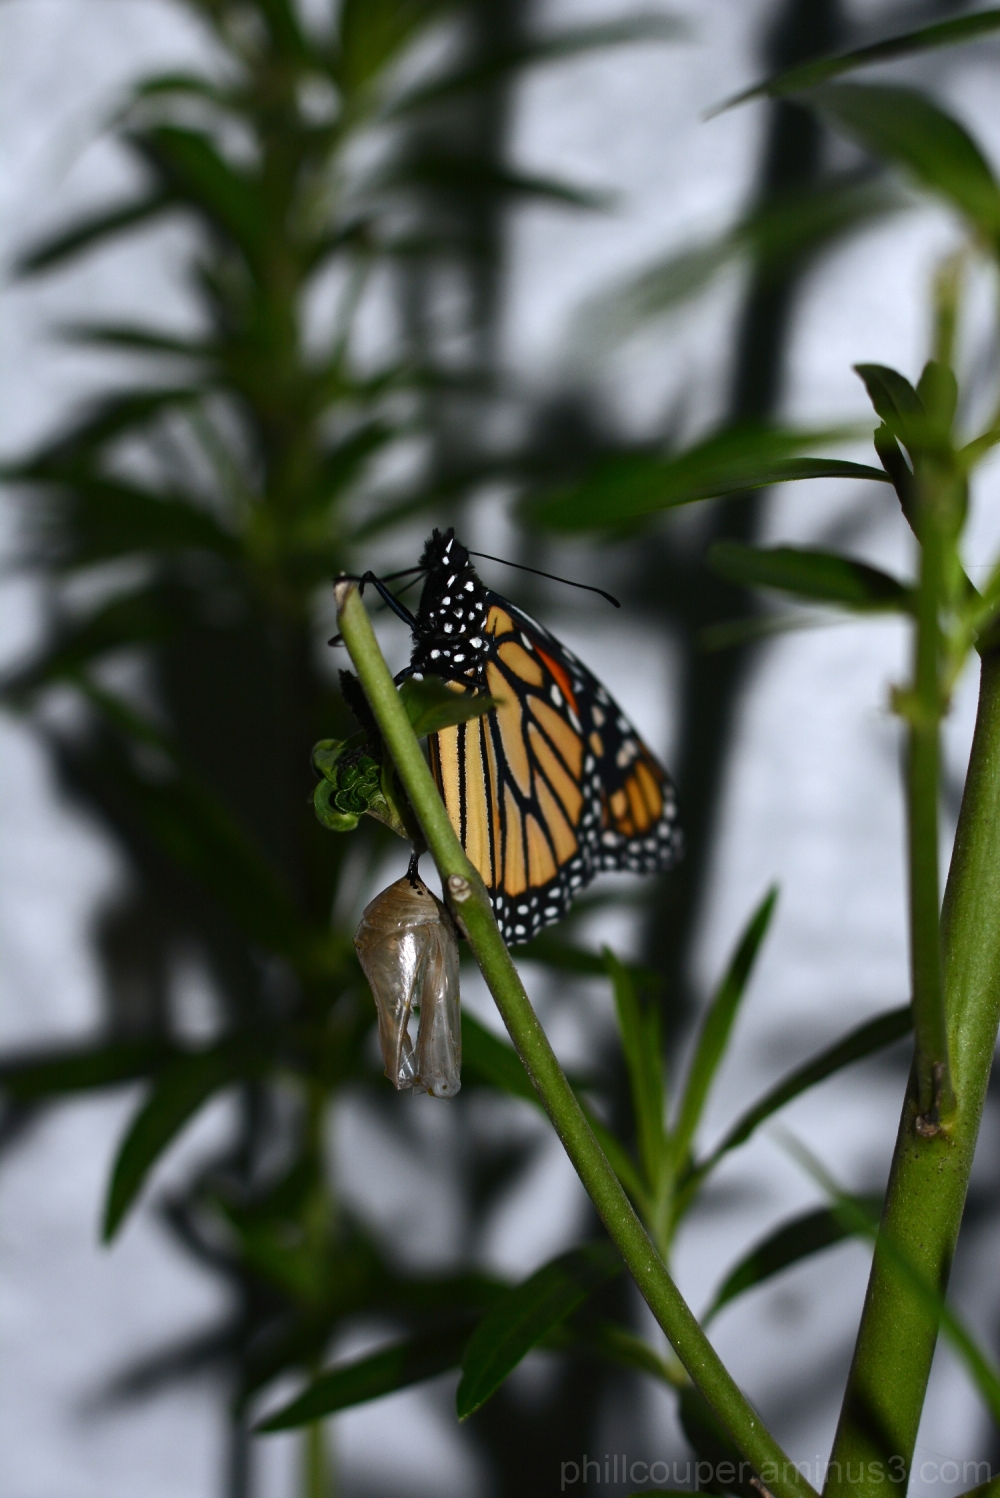 New Butterfly sunning its wings before leaving